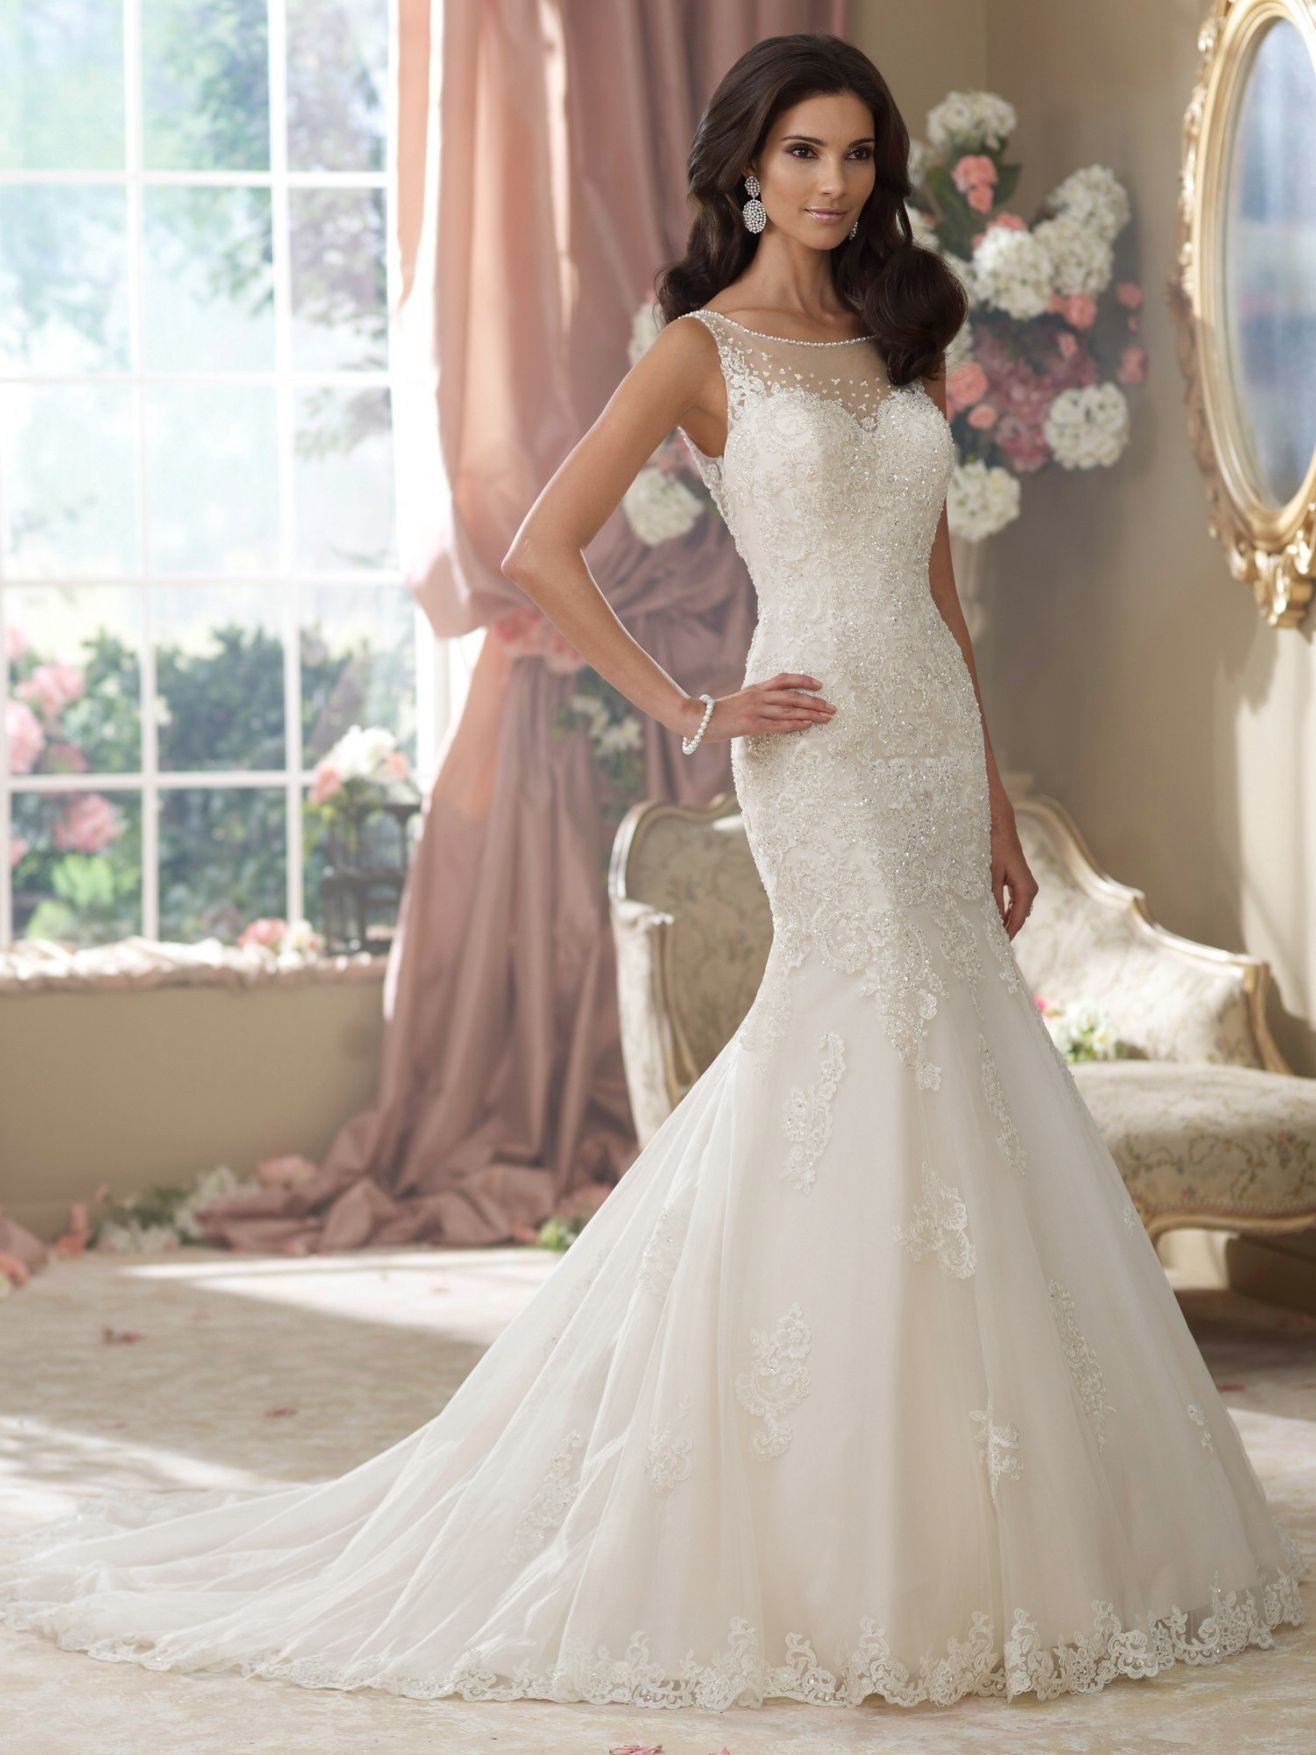 99 david tutera wedding dress prices wedding dresses for plus 99 david tutera wedding dress prices wedding dresses for plus size check more at junglespirit